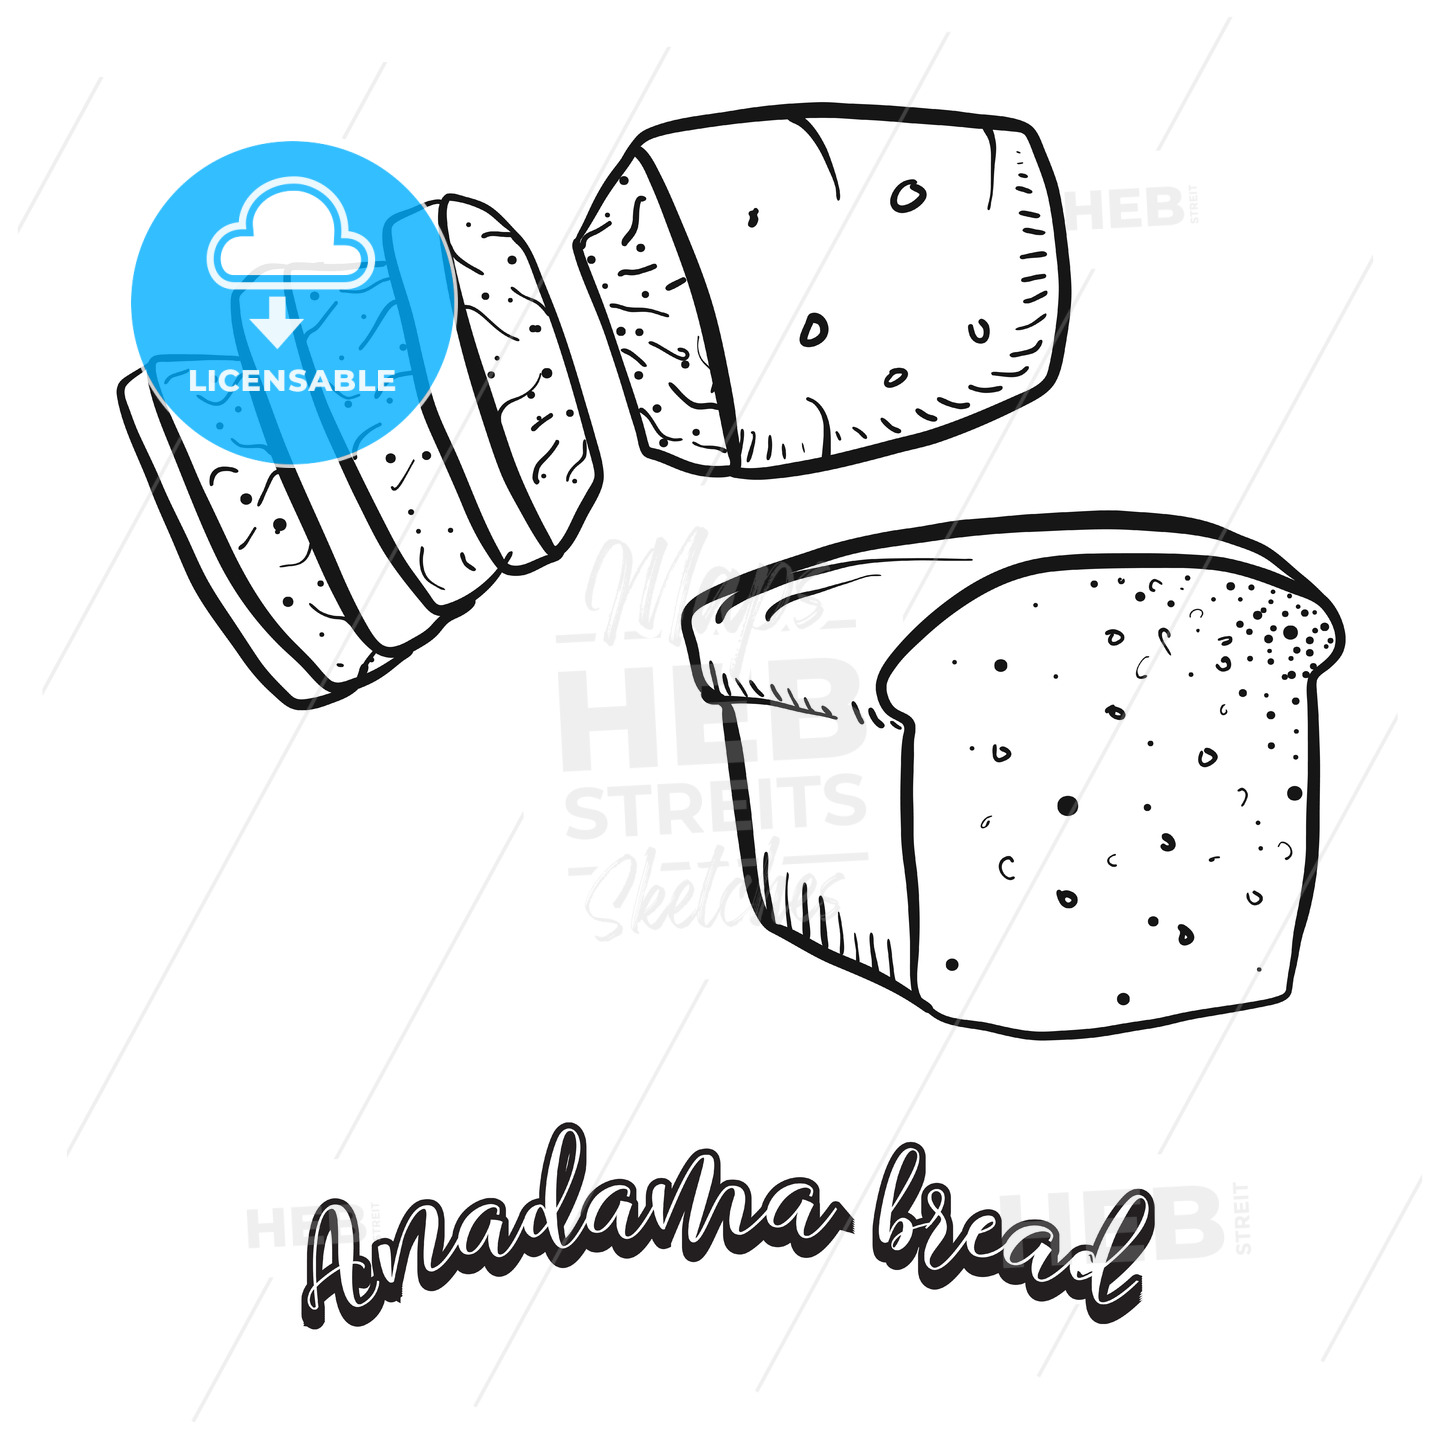 Hand drawn sketch of Anadama bread food - HEBSTREITS